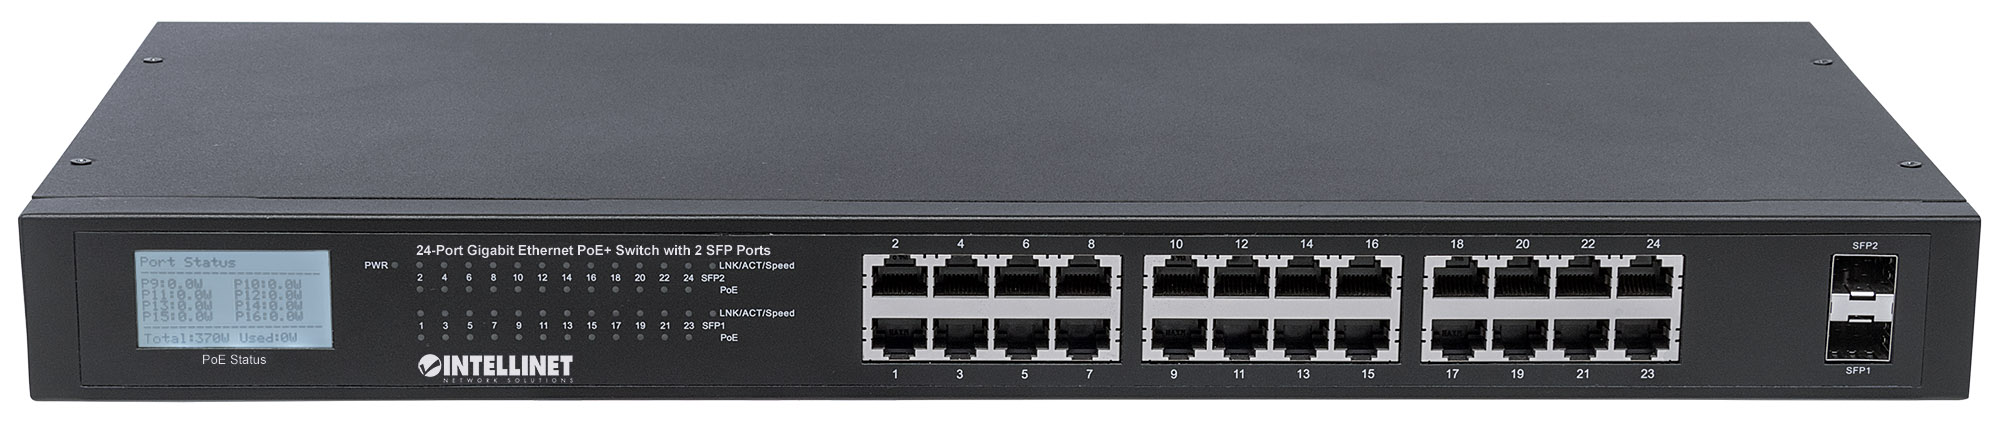 24-Port Gigabit Ethernet PoE+ Switch with 2 SFP Ports and LCD Screen